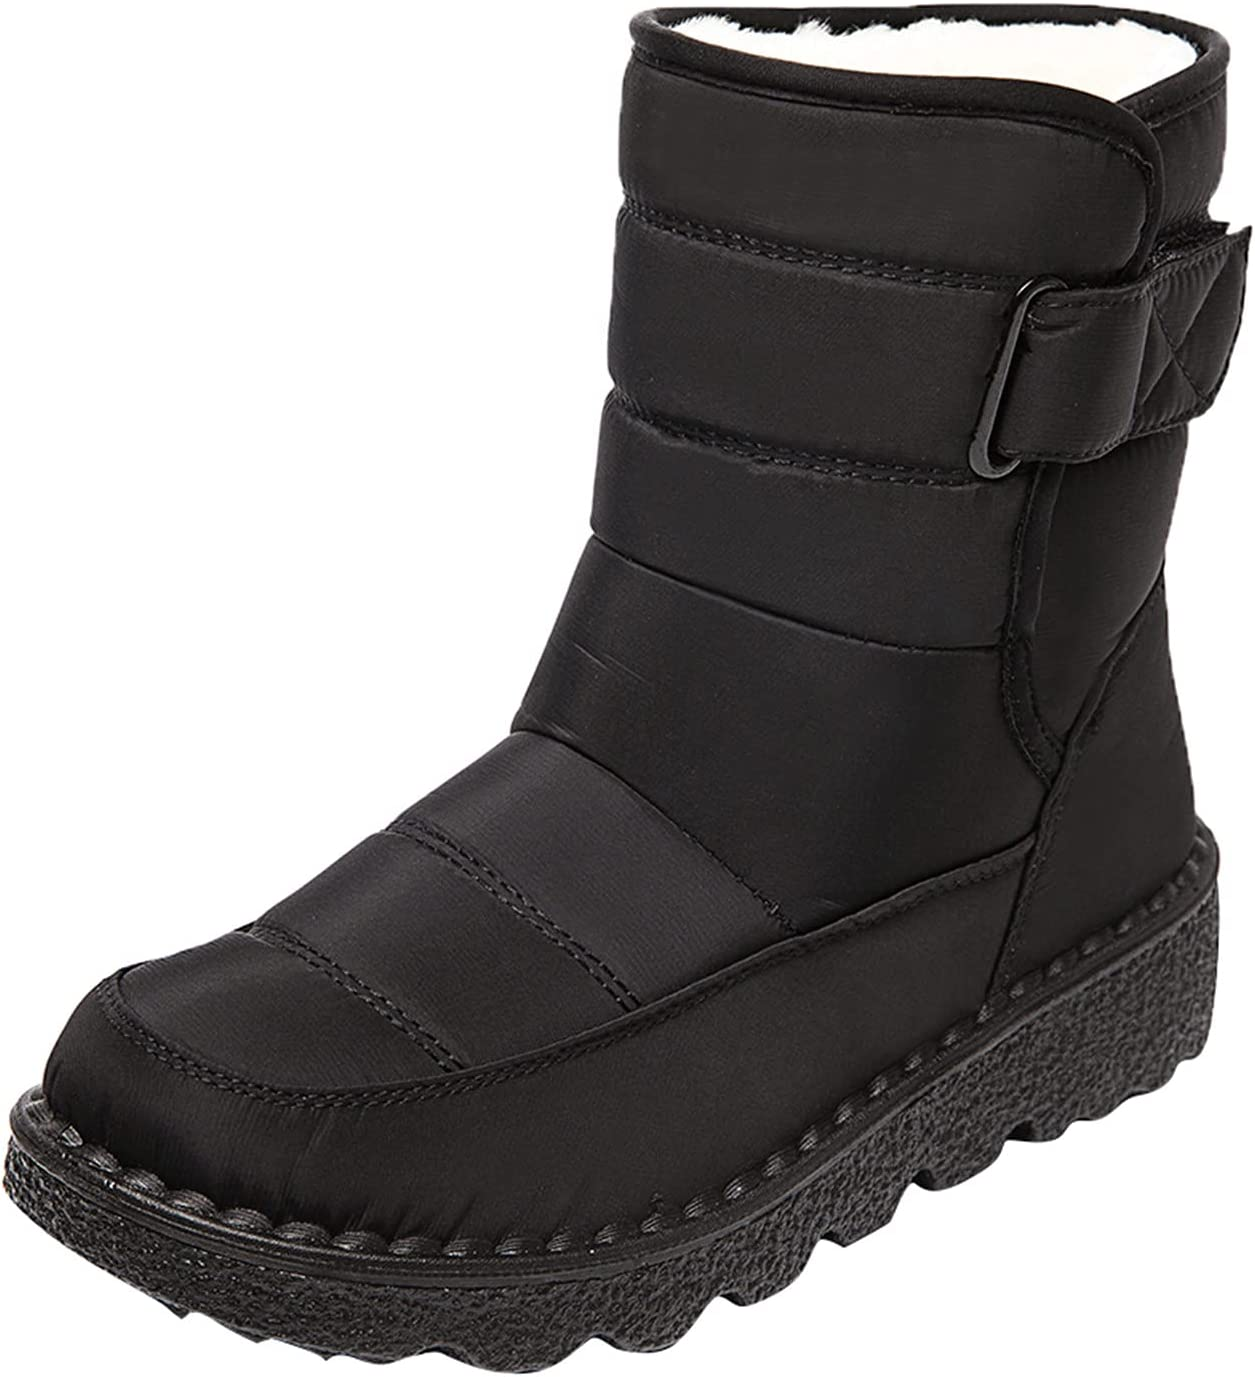 Woolkey Winter Boots for Women Max 70% OFF Retro Warm Fashion Inexpensive Slip Non Ankle